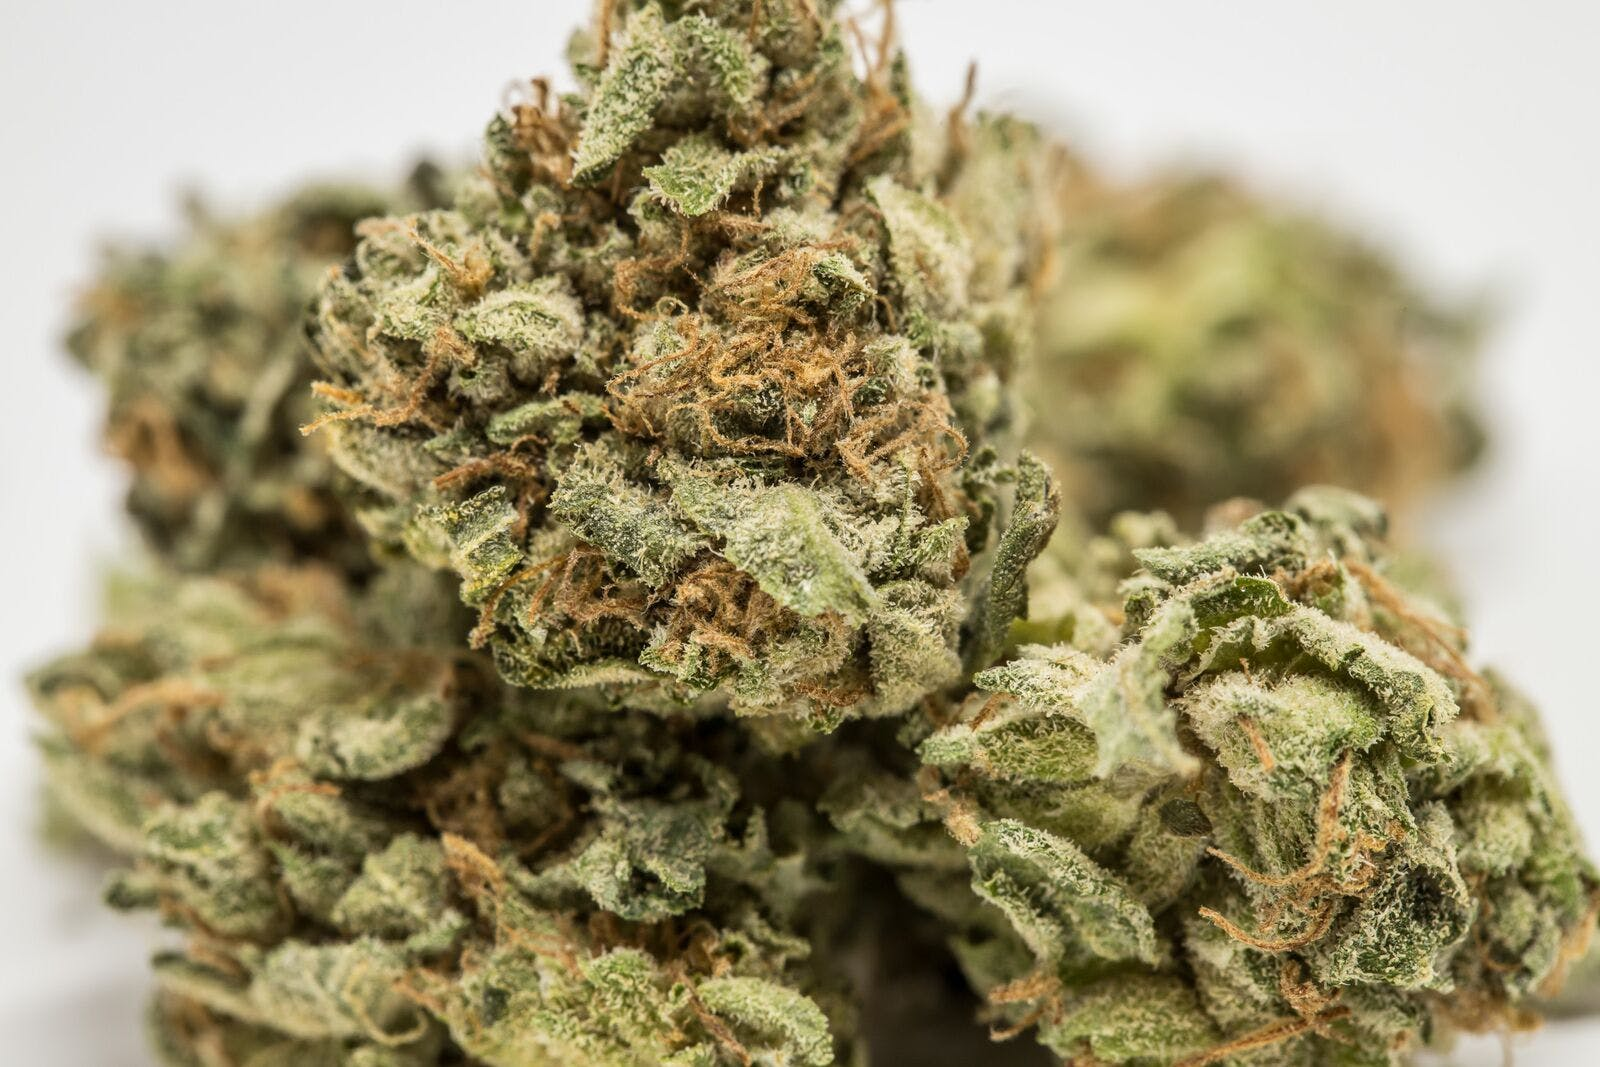 Rockstar Marijuana Strain How to Get the Most Out Of Your Stash with the Best Weed Grinders